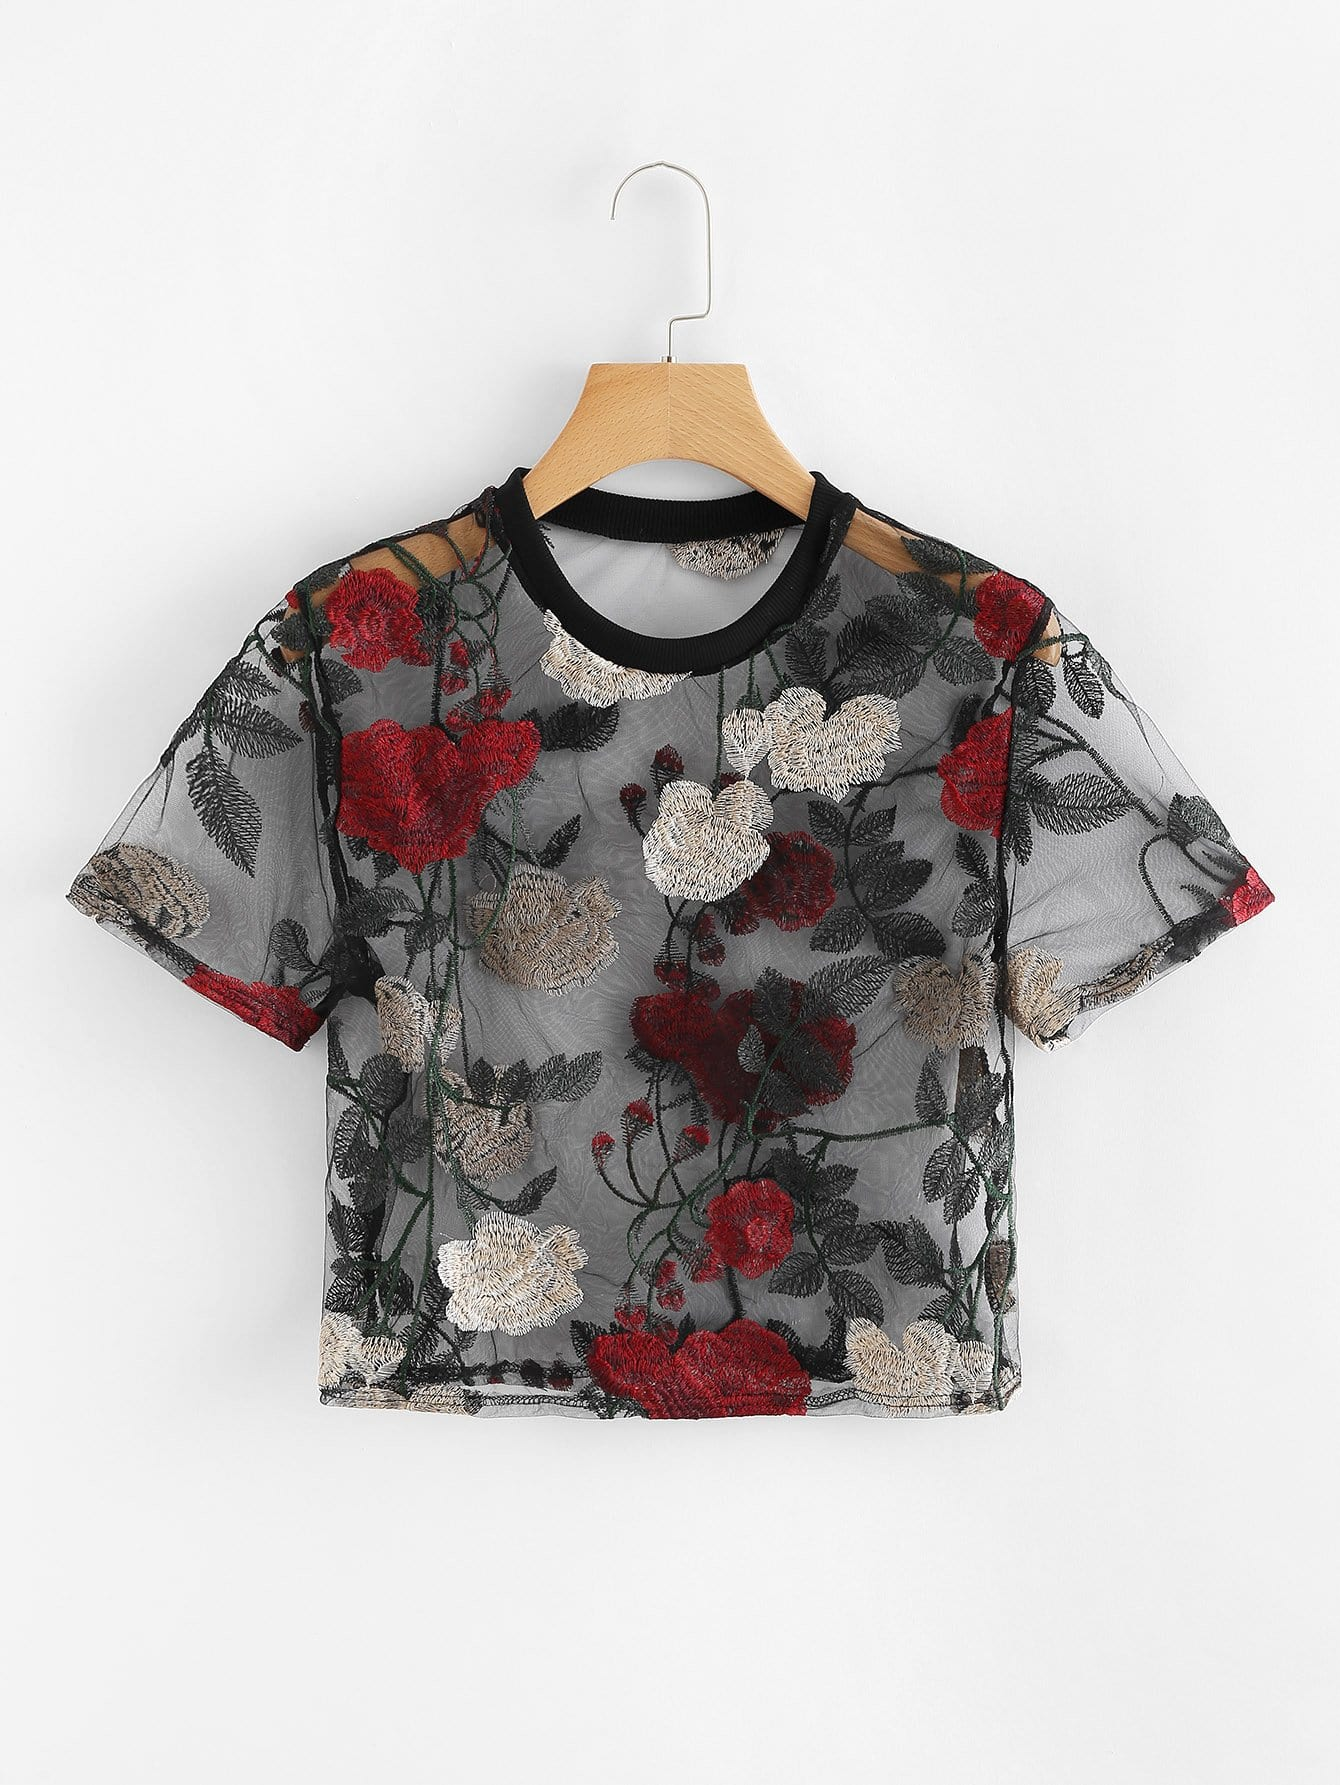 Sheer Mesh Floral Embroidered Crop Top embroidered flower mesh crop top